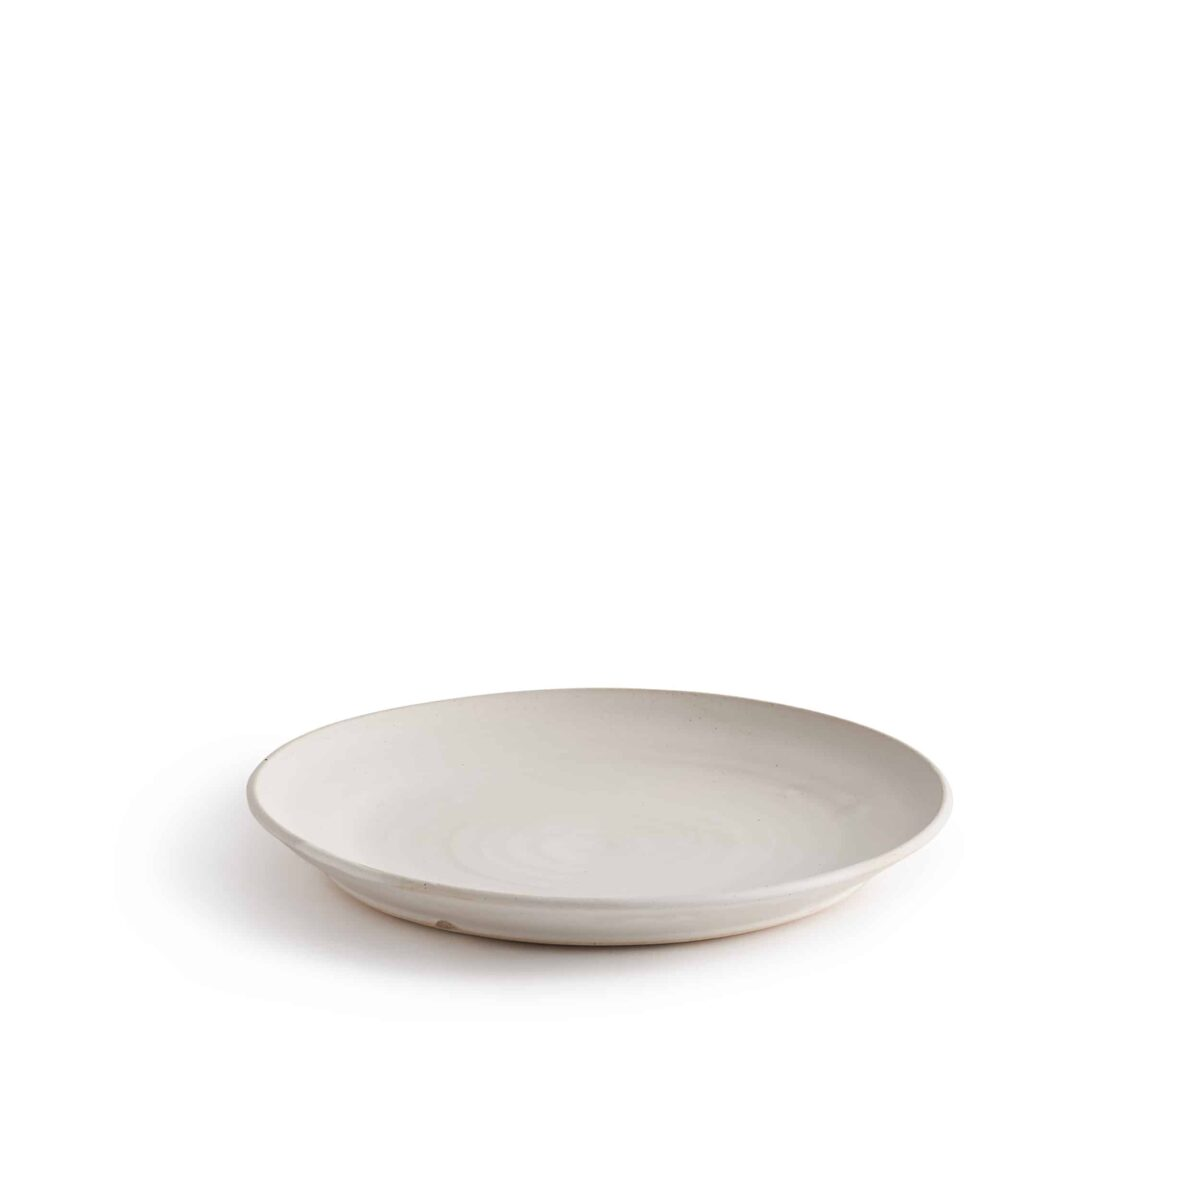 Marland Side Plate Matt White – Another Country – Photo Credit Yeshen Venema -web ready – 21.11.184234